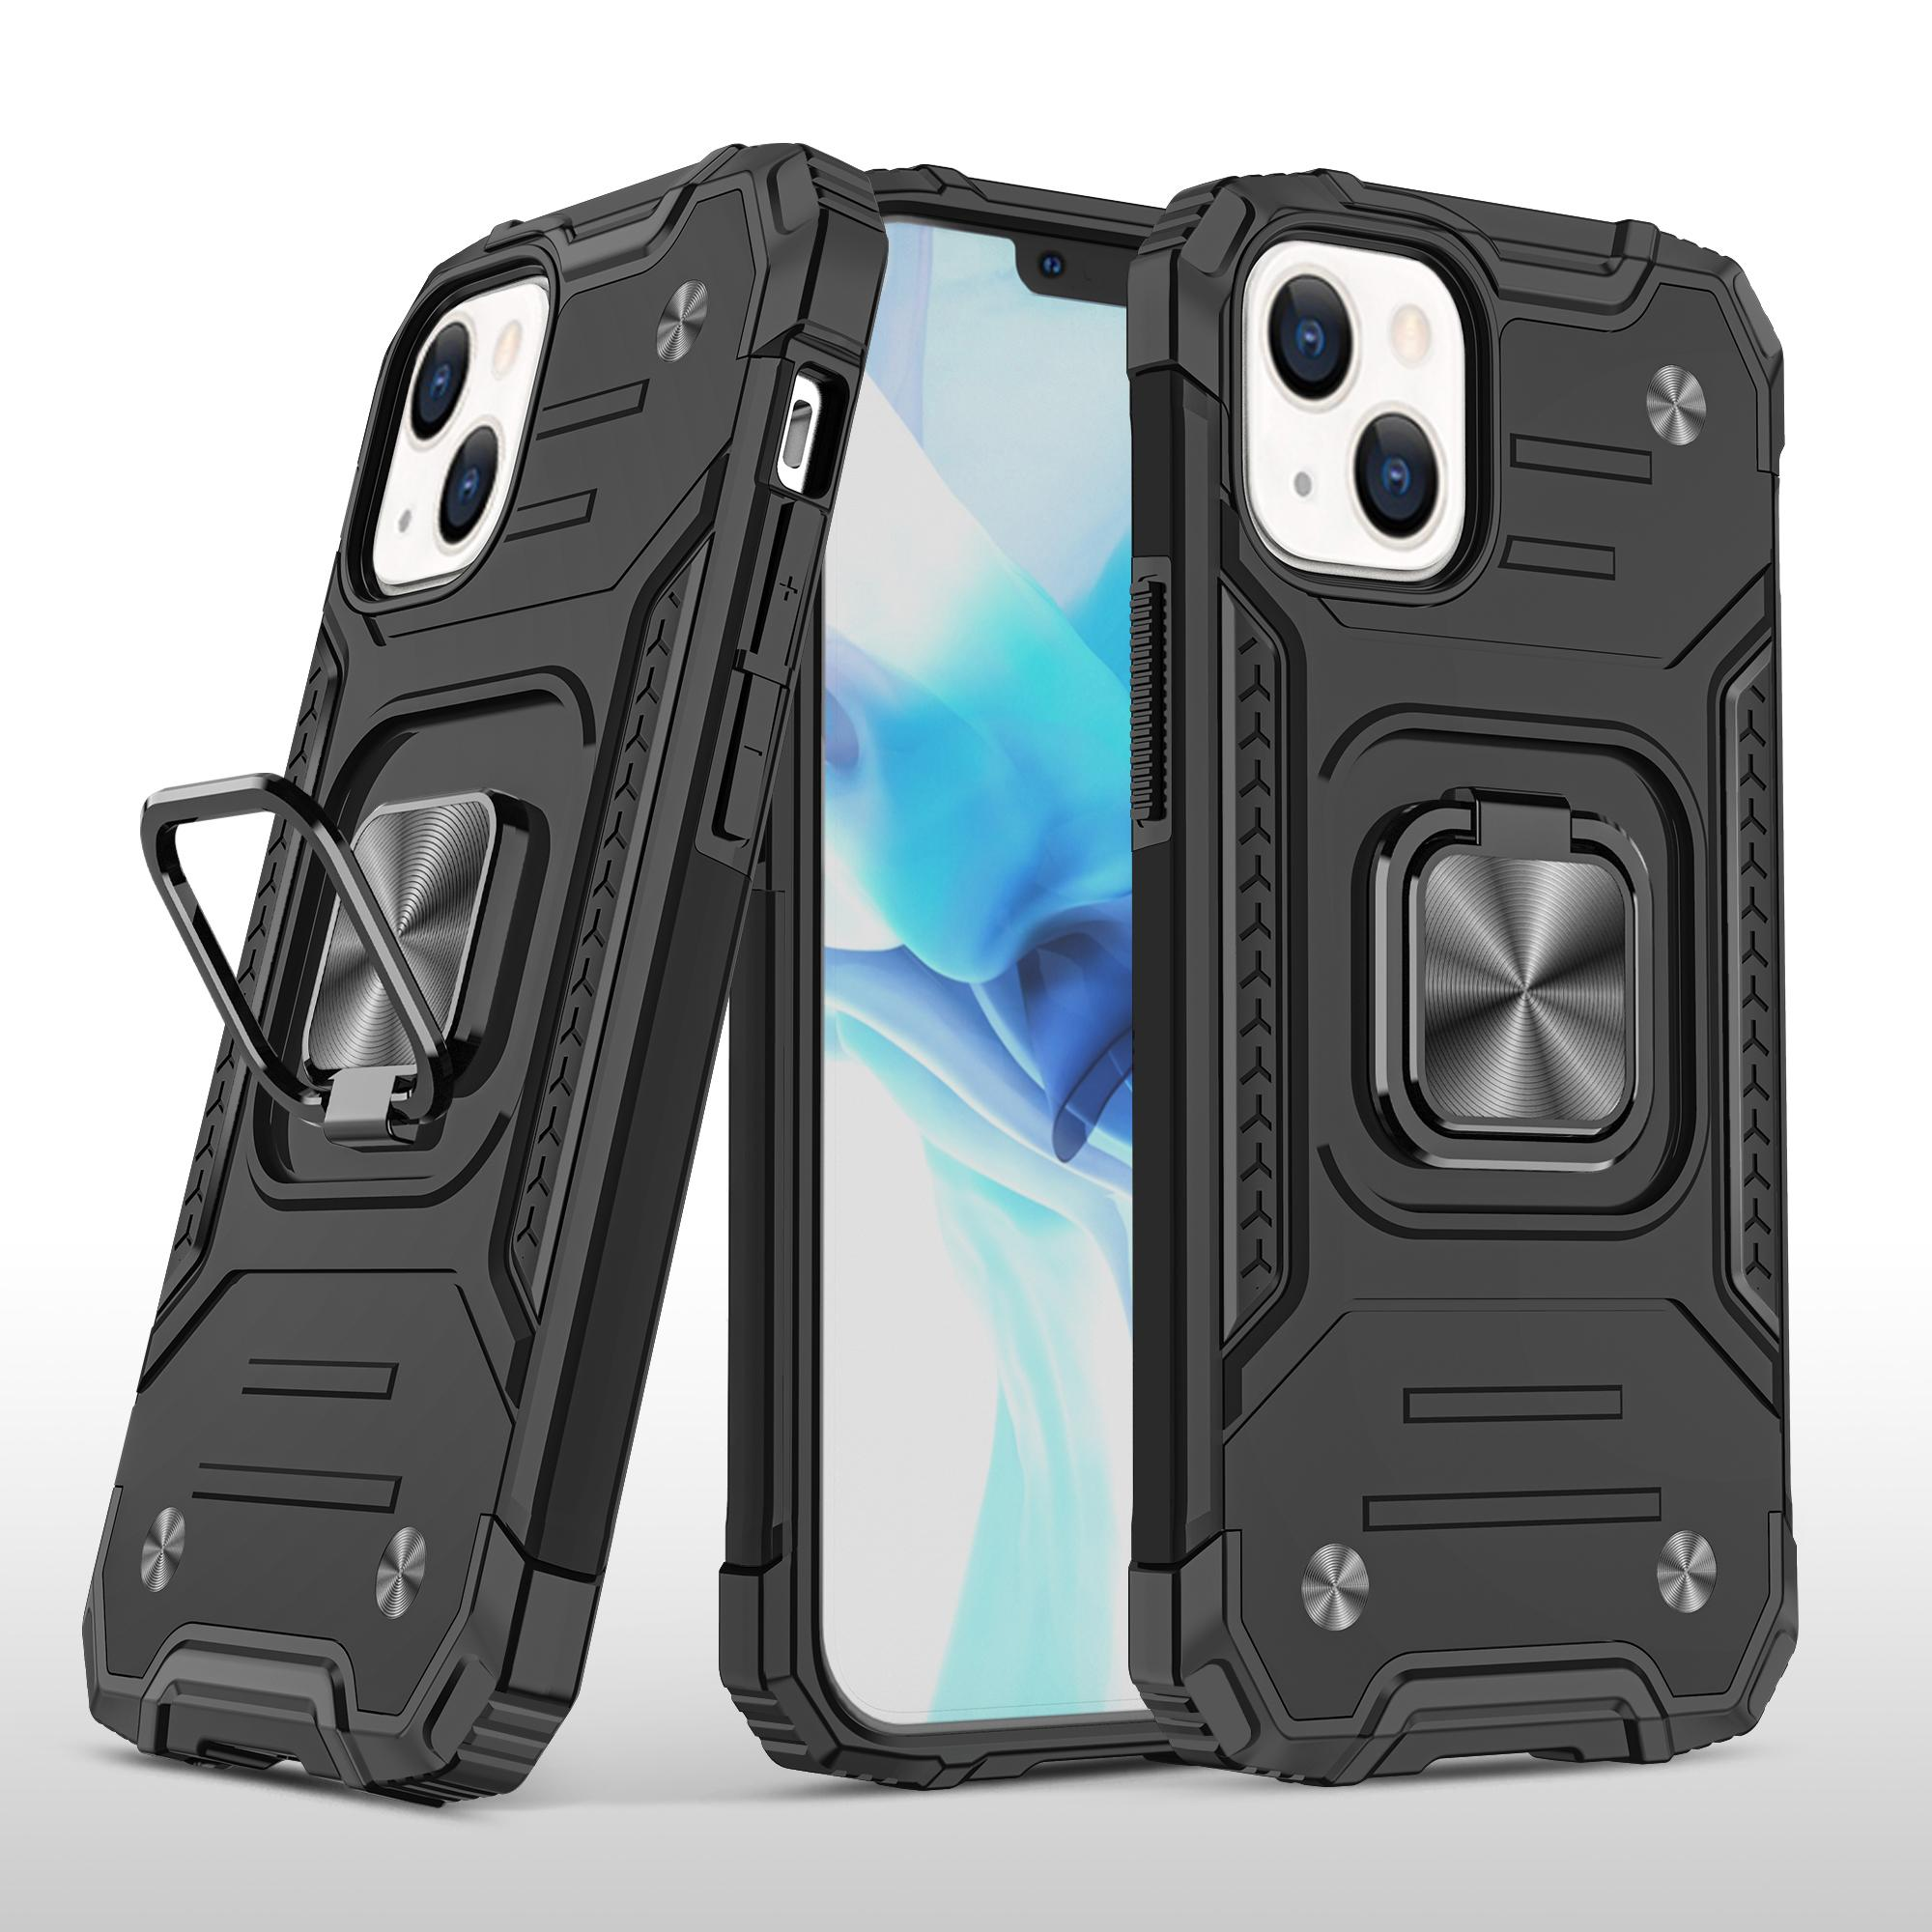 Phone Cases For iphone 13 Pro Max 12 Mini 11 Xs Xr X 7 8 Plus 6 6s Samsung A72 A52 A32 A22 A12 A02s A02 Shockproof Kickstand Protective Shell